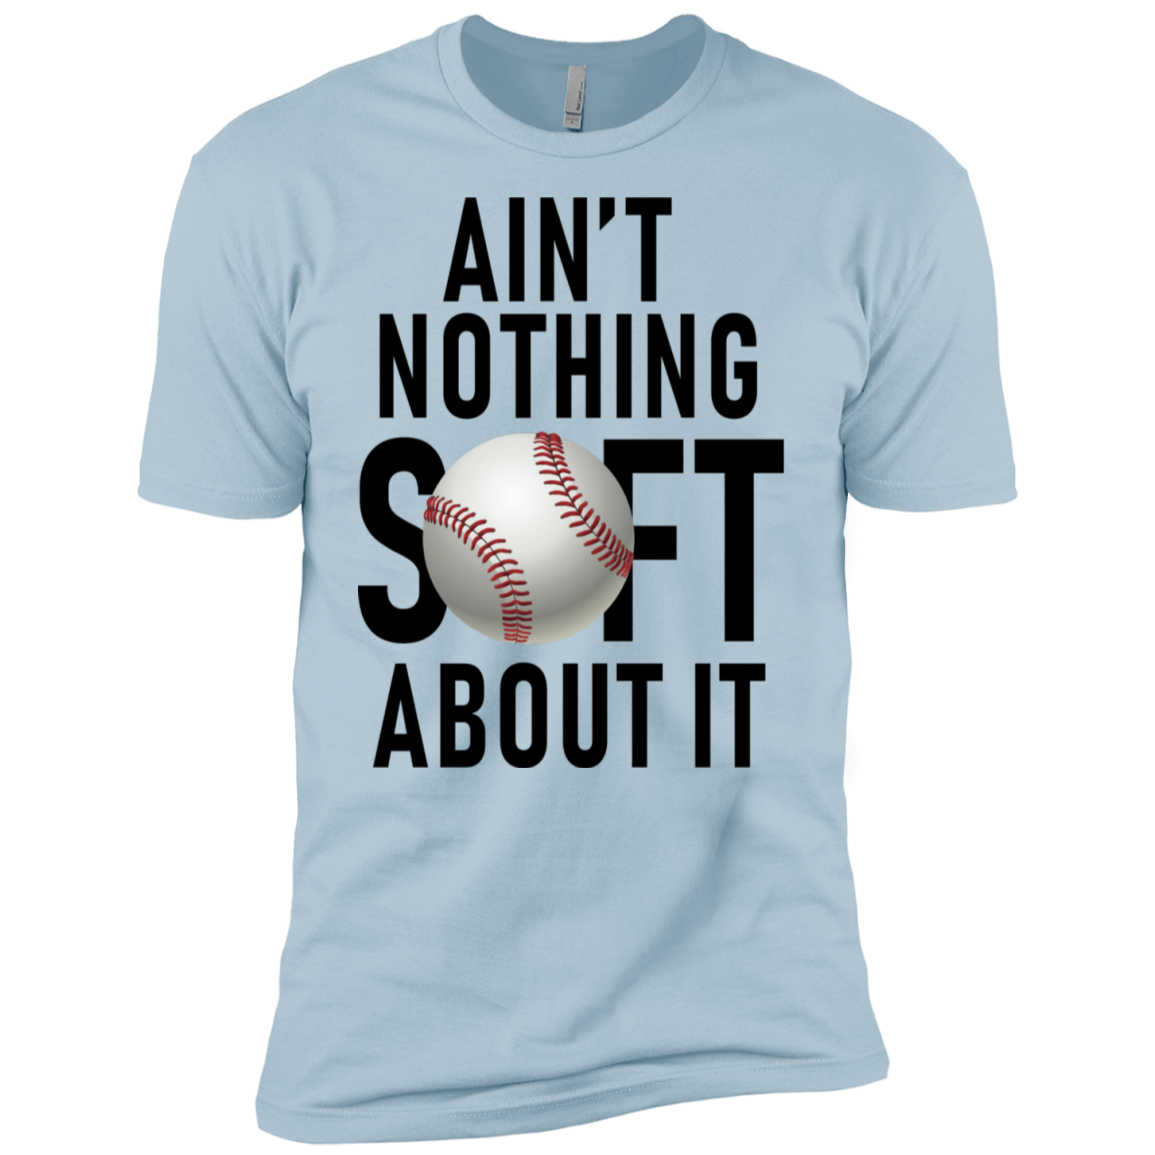 Ain't Nothing Soft About It Men's Classic Tee